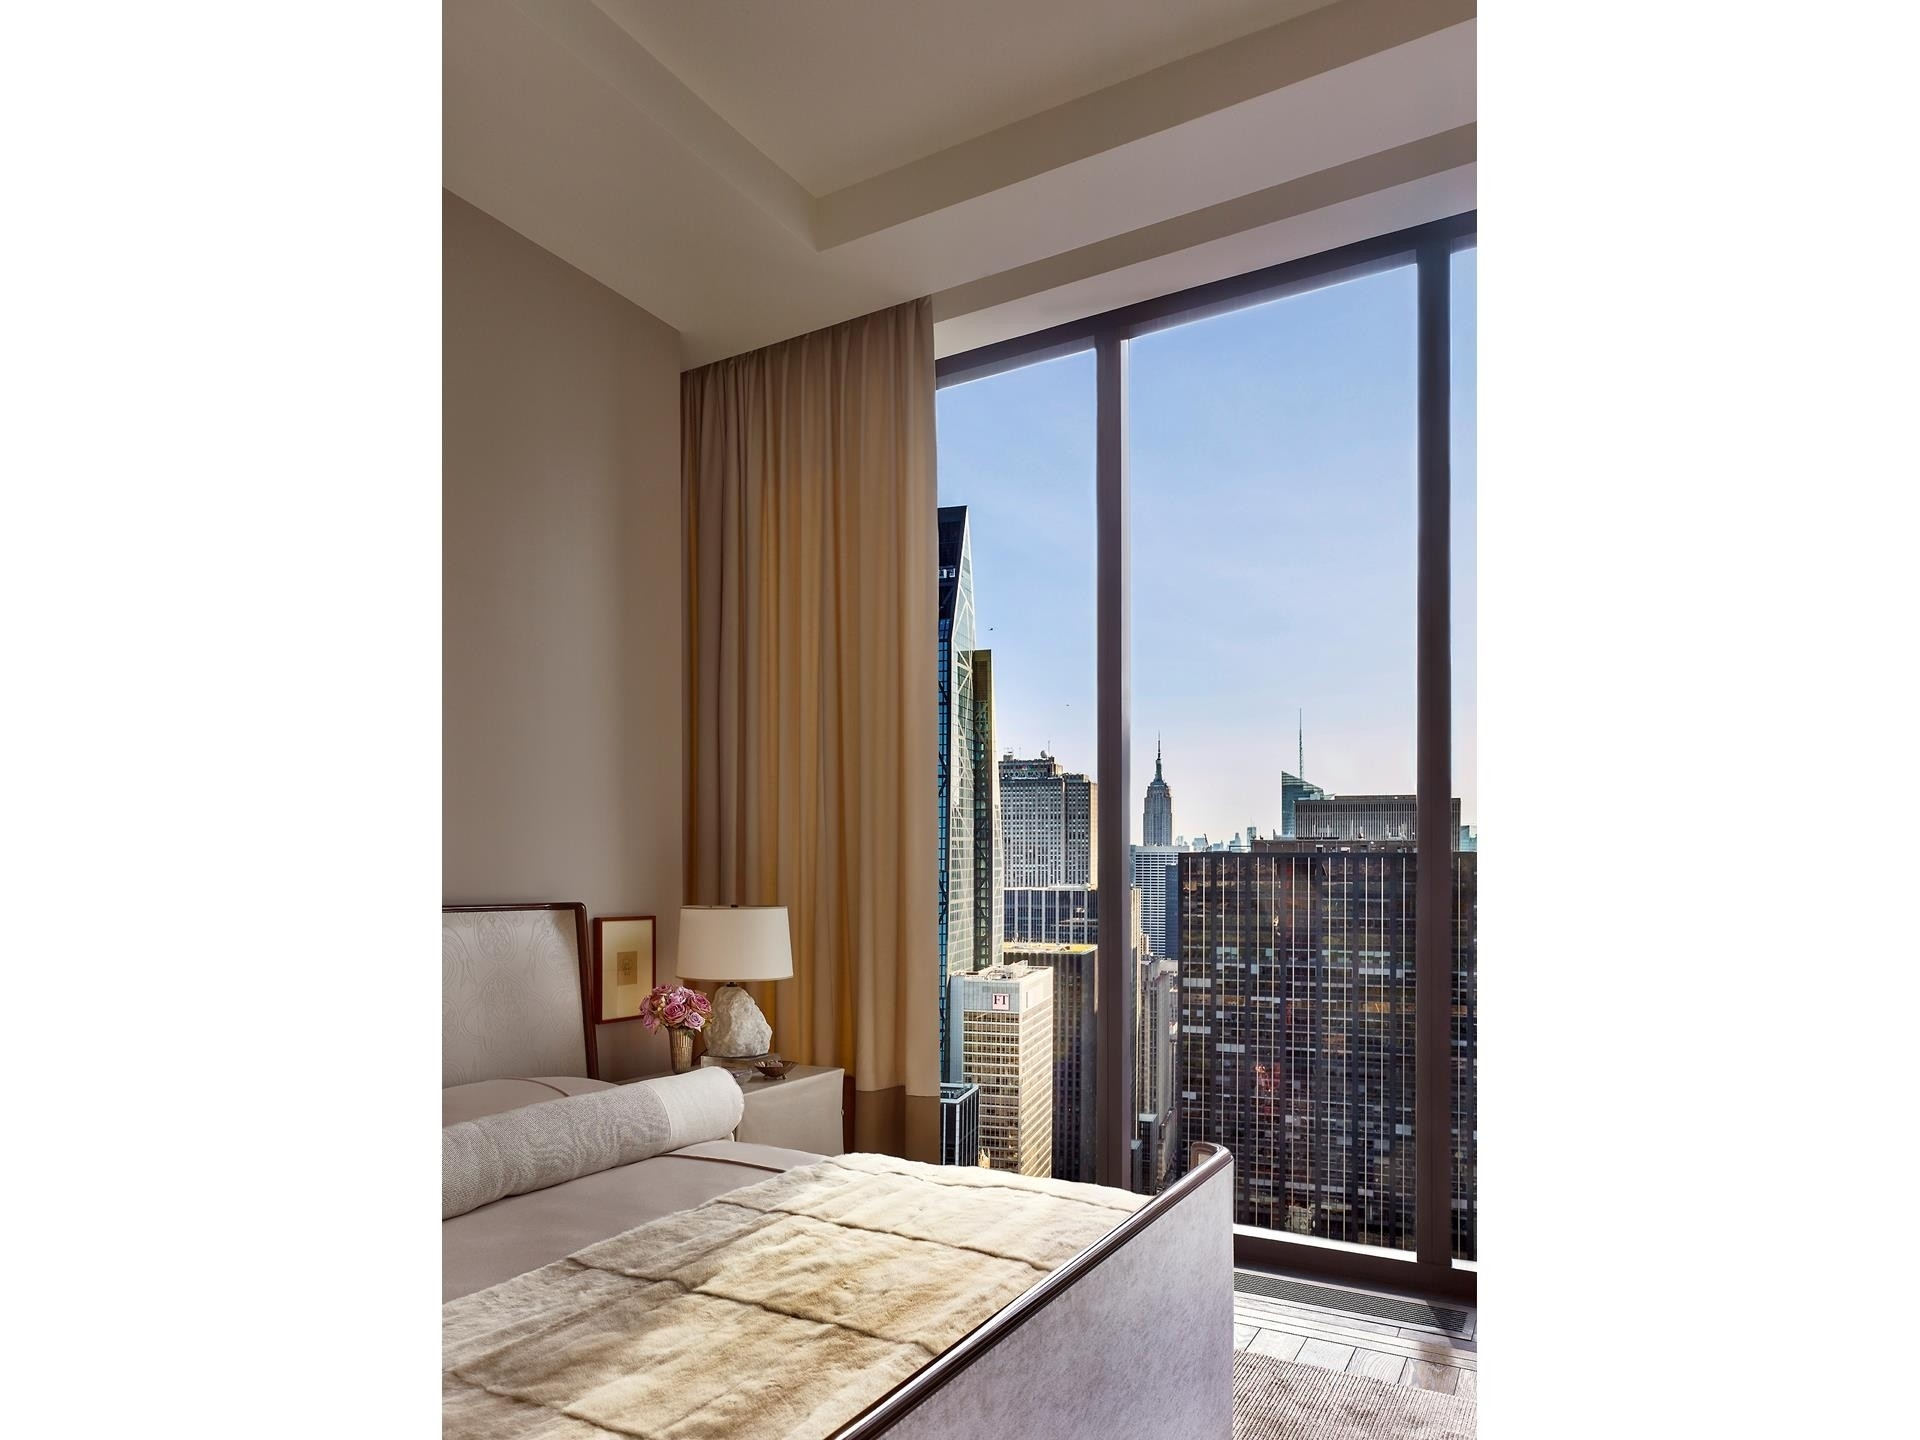 4. Condominiums for Sale at 111 W 57TH ST , 55 Midtown West, New York, NY 10019